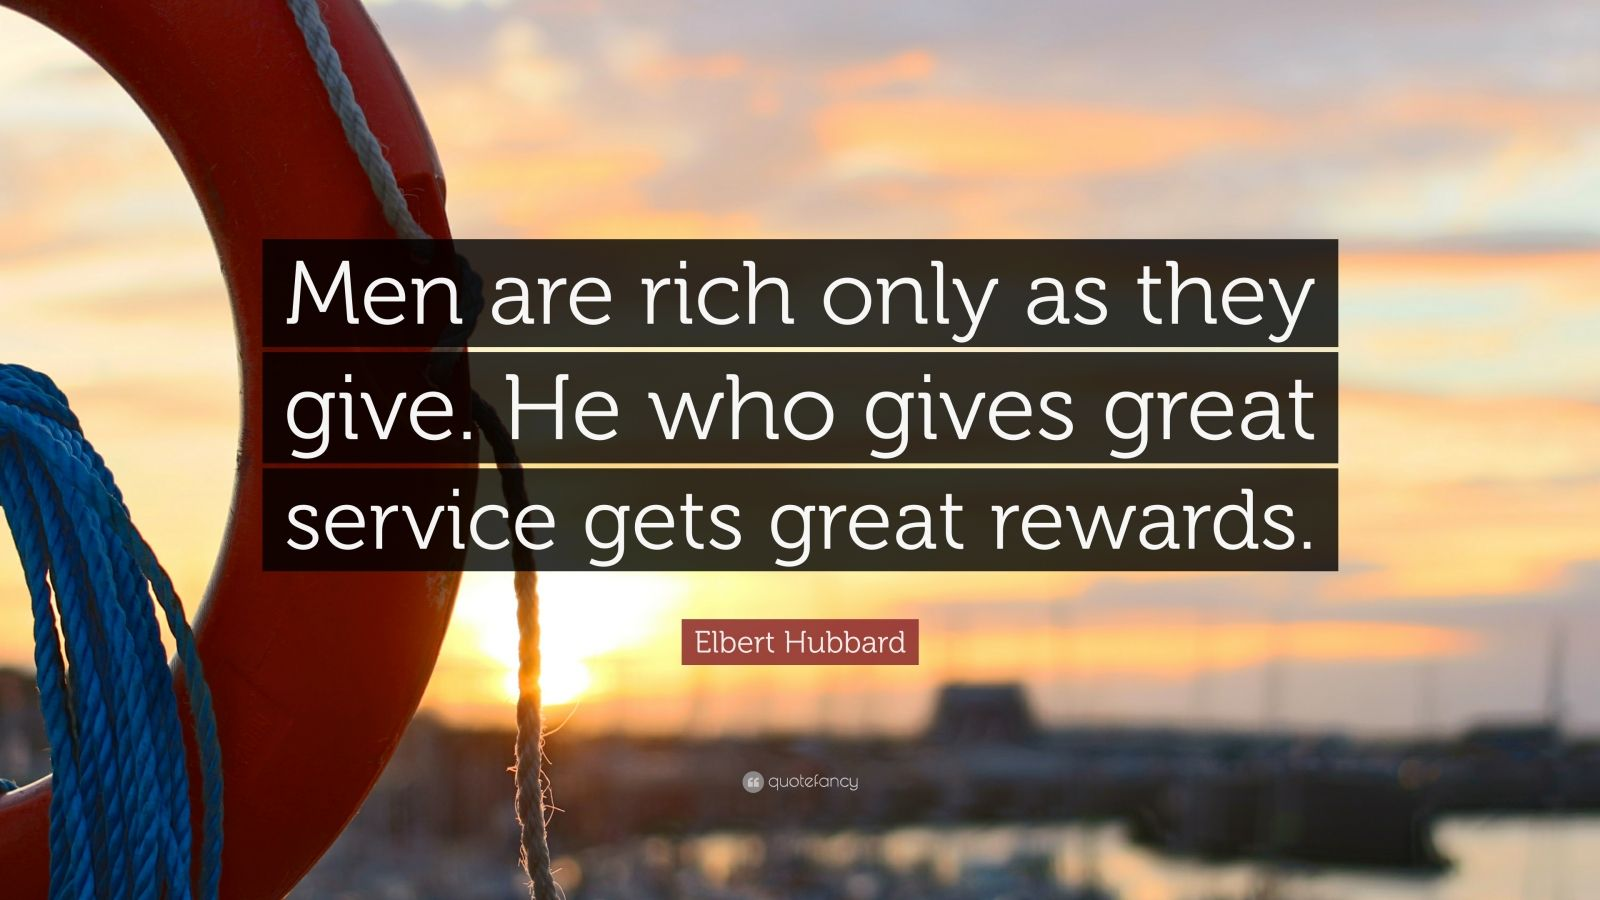 """Elbert Hubbard Quote: """"Men are rich only as they give. He who gives great service gets great rewards."""""""